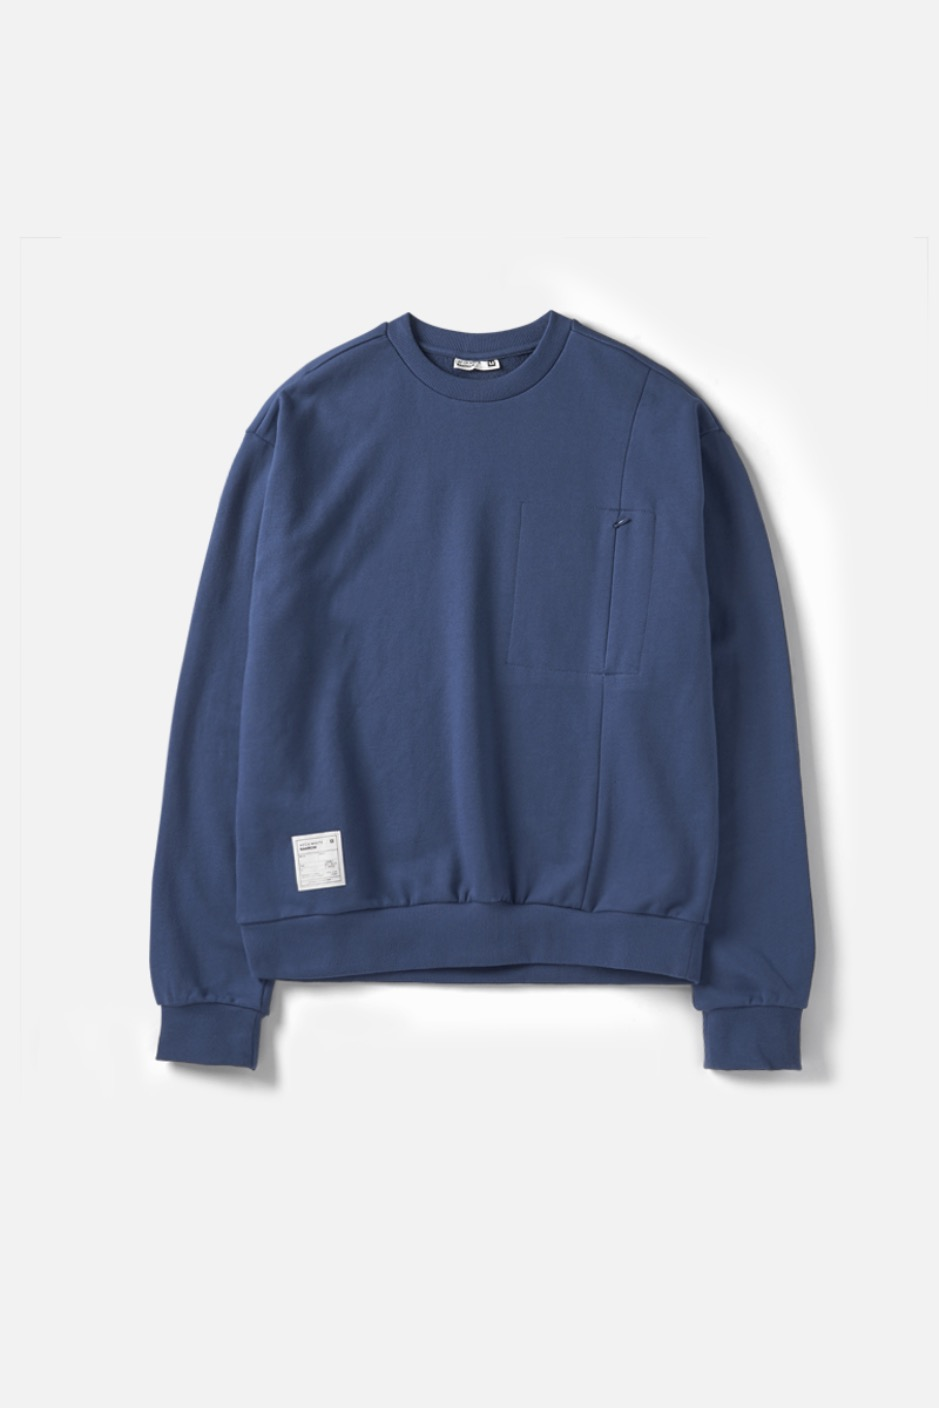 RAWROW X AECA WHITE SWEAT SHIRT-DEEP BLUE